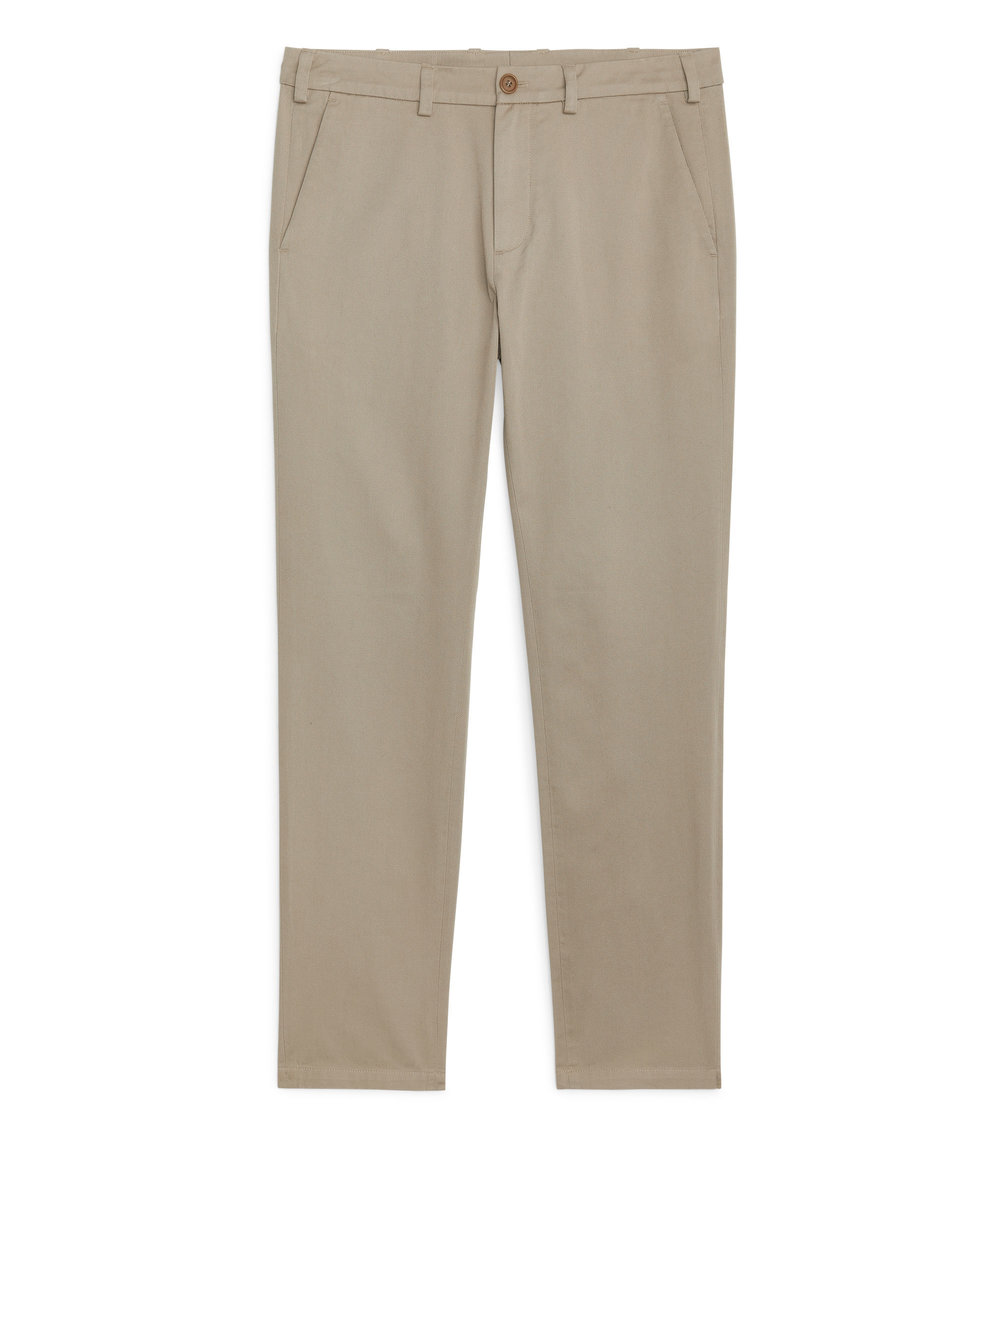 Arket chinos - £55 - ... to be worn with these slim cut chinos